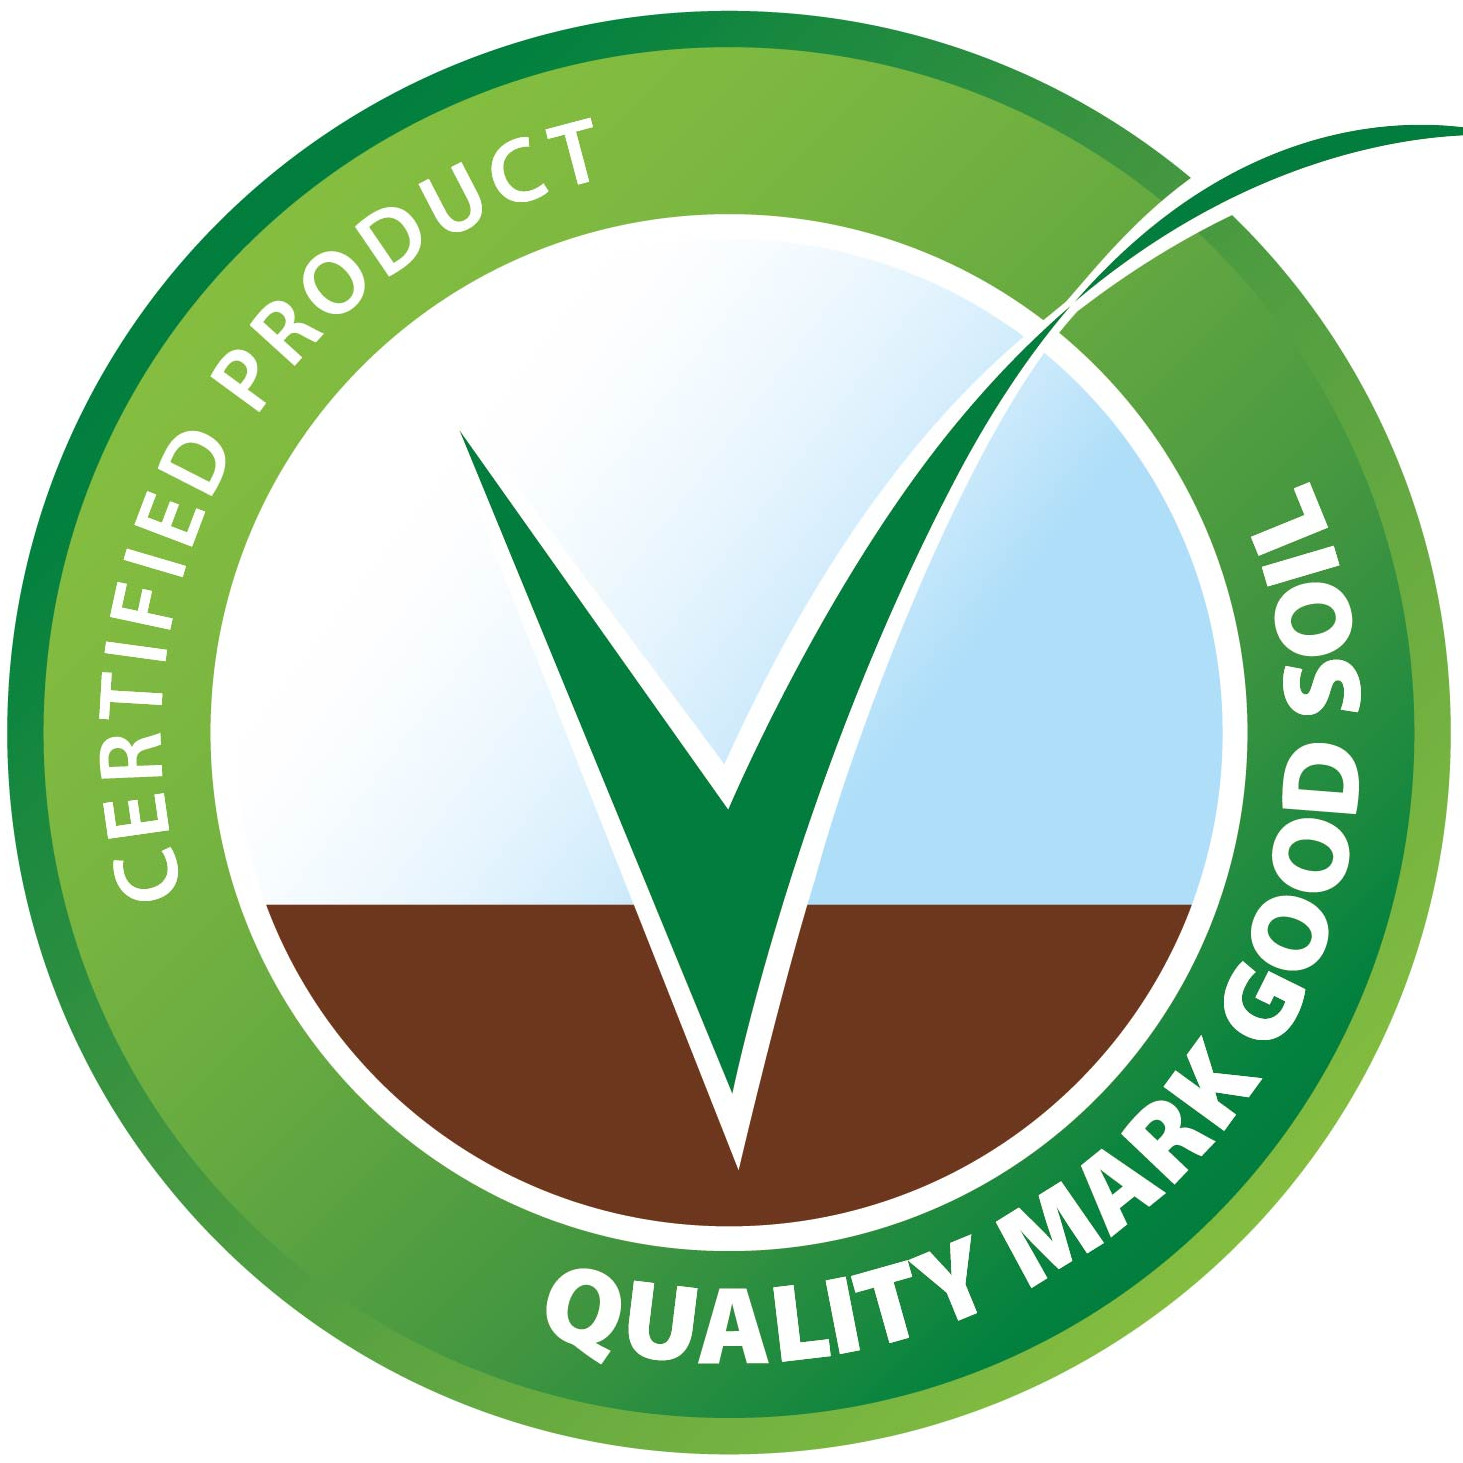 QMGS - Quality Mark Good Soil